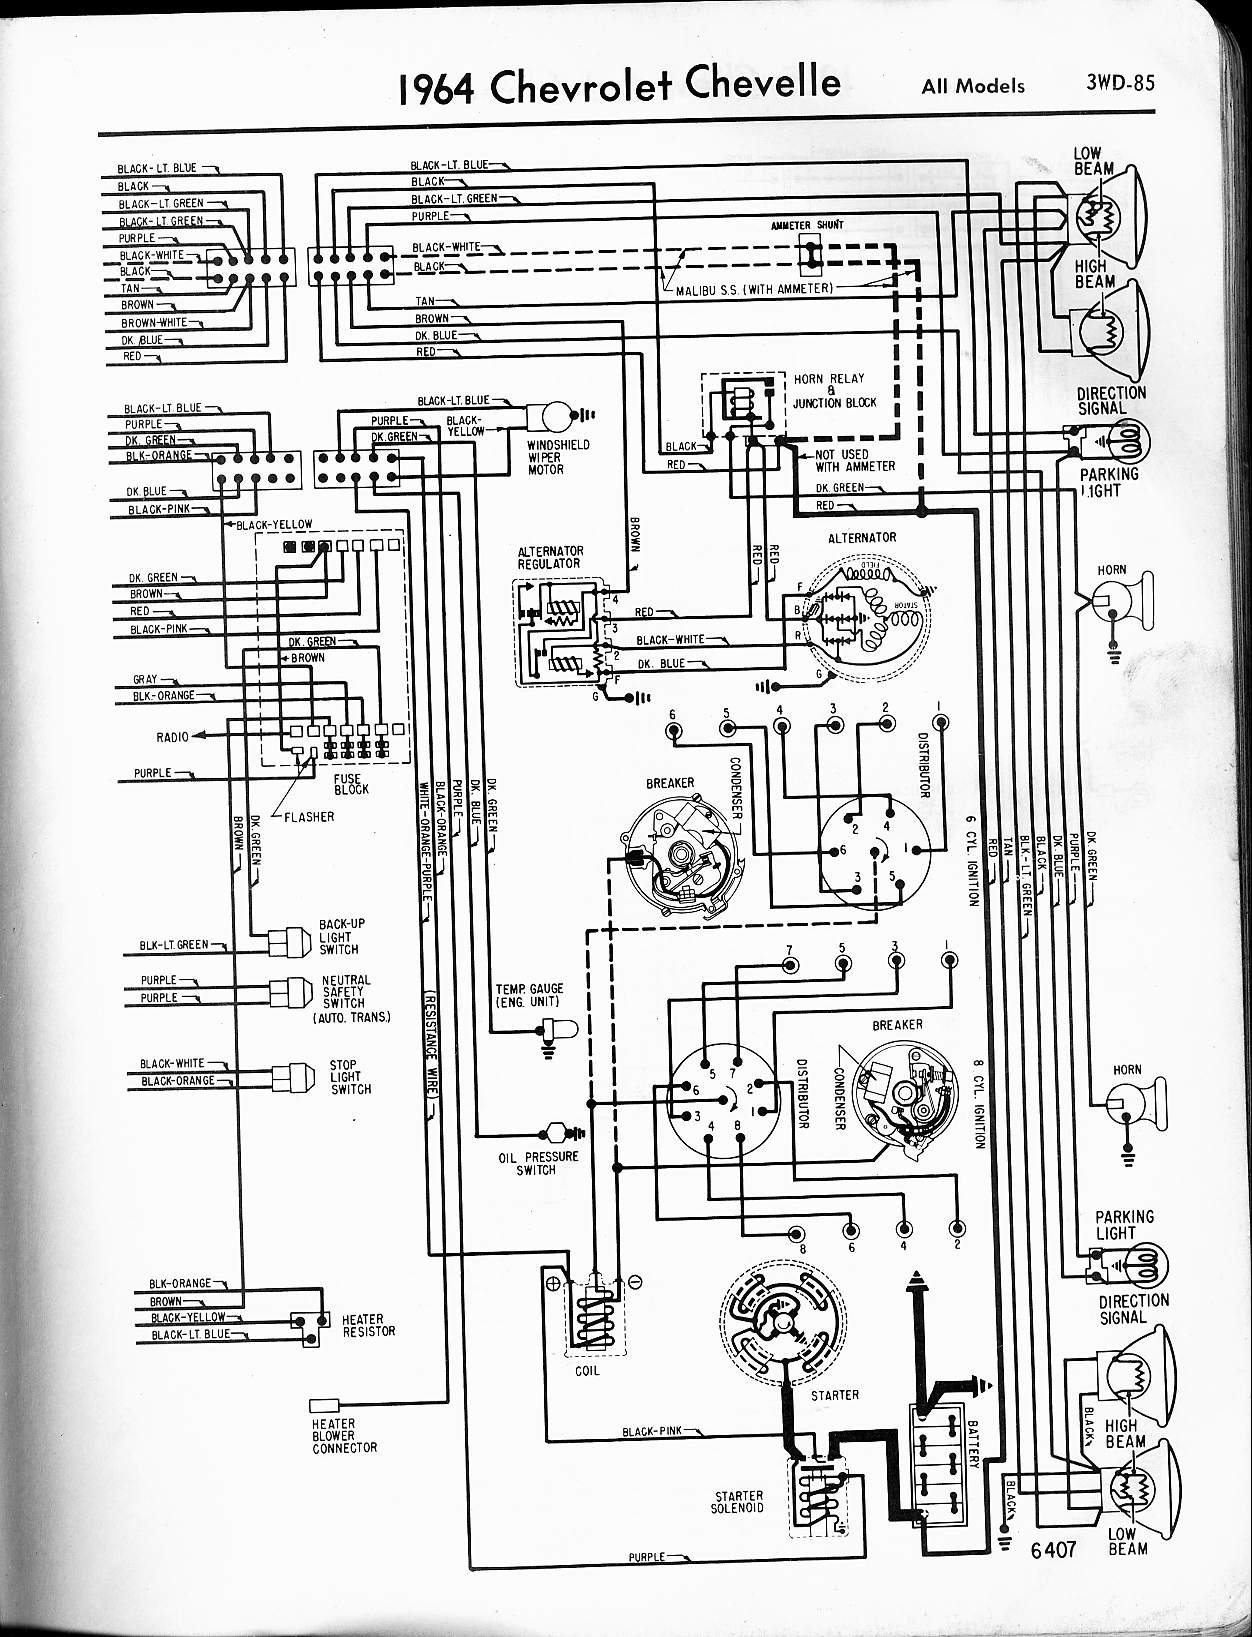 chevy diagrams 1966 chevy c10 wiring-diagram 1964 chevelle wiring diagram figure a figure b